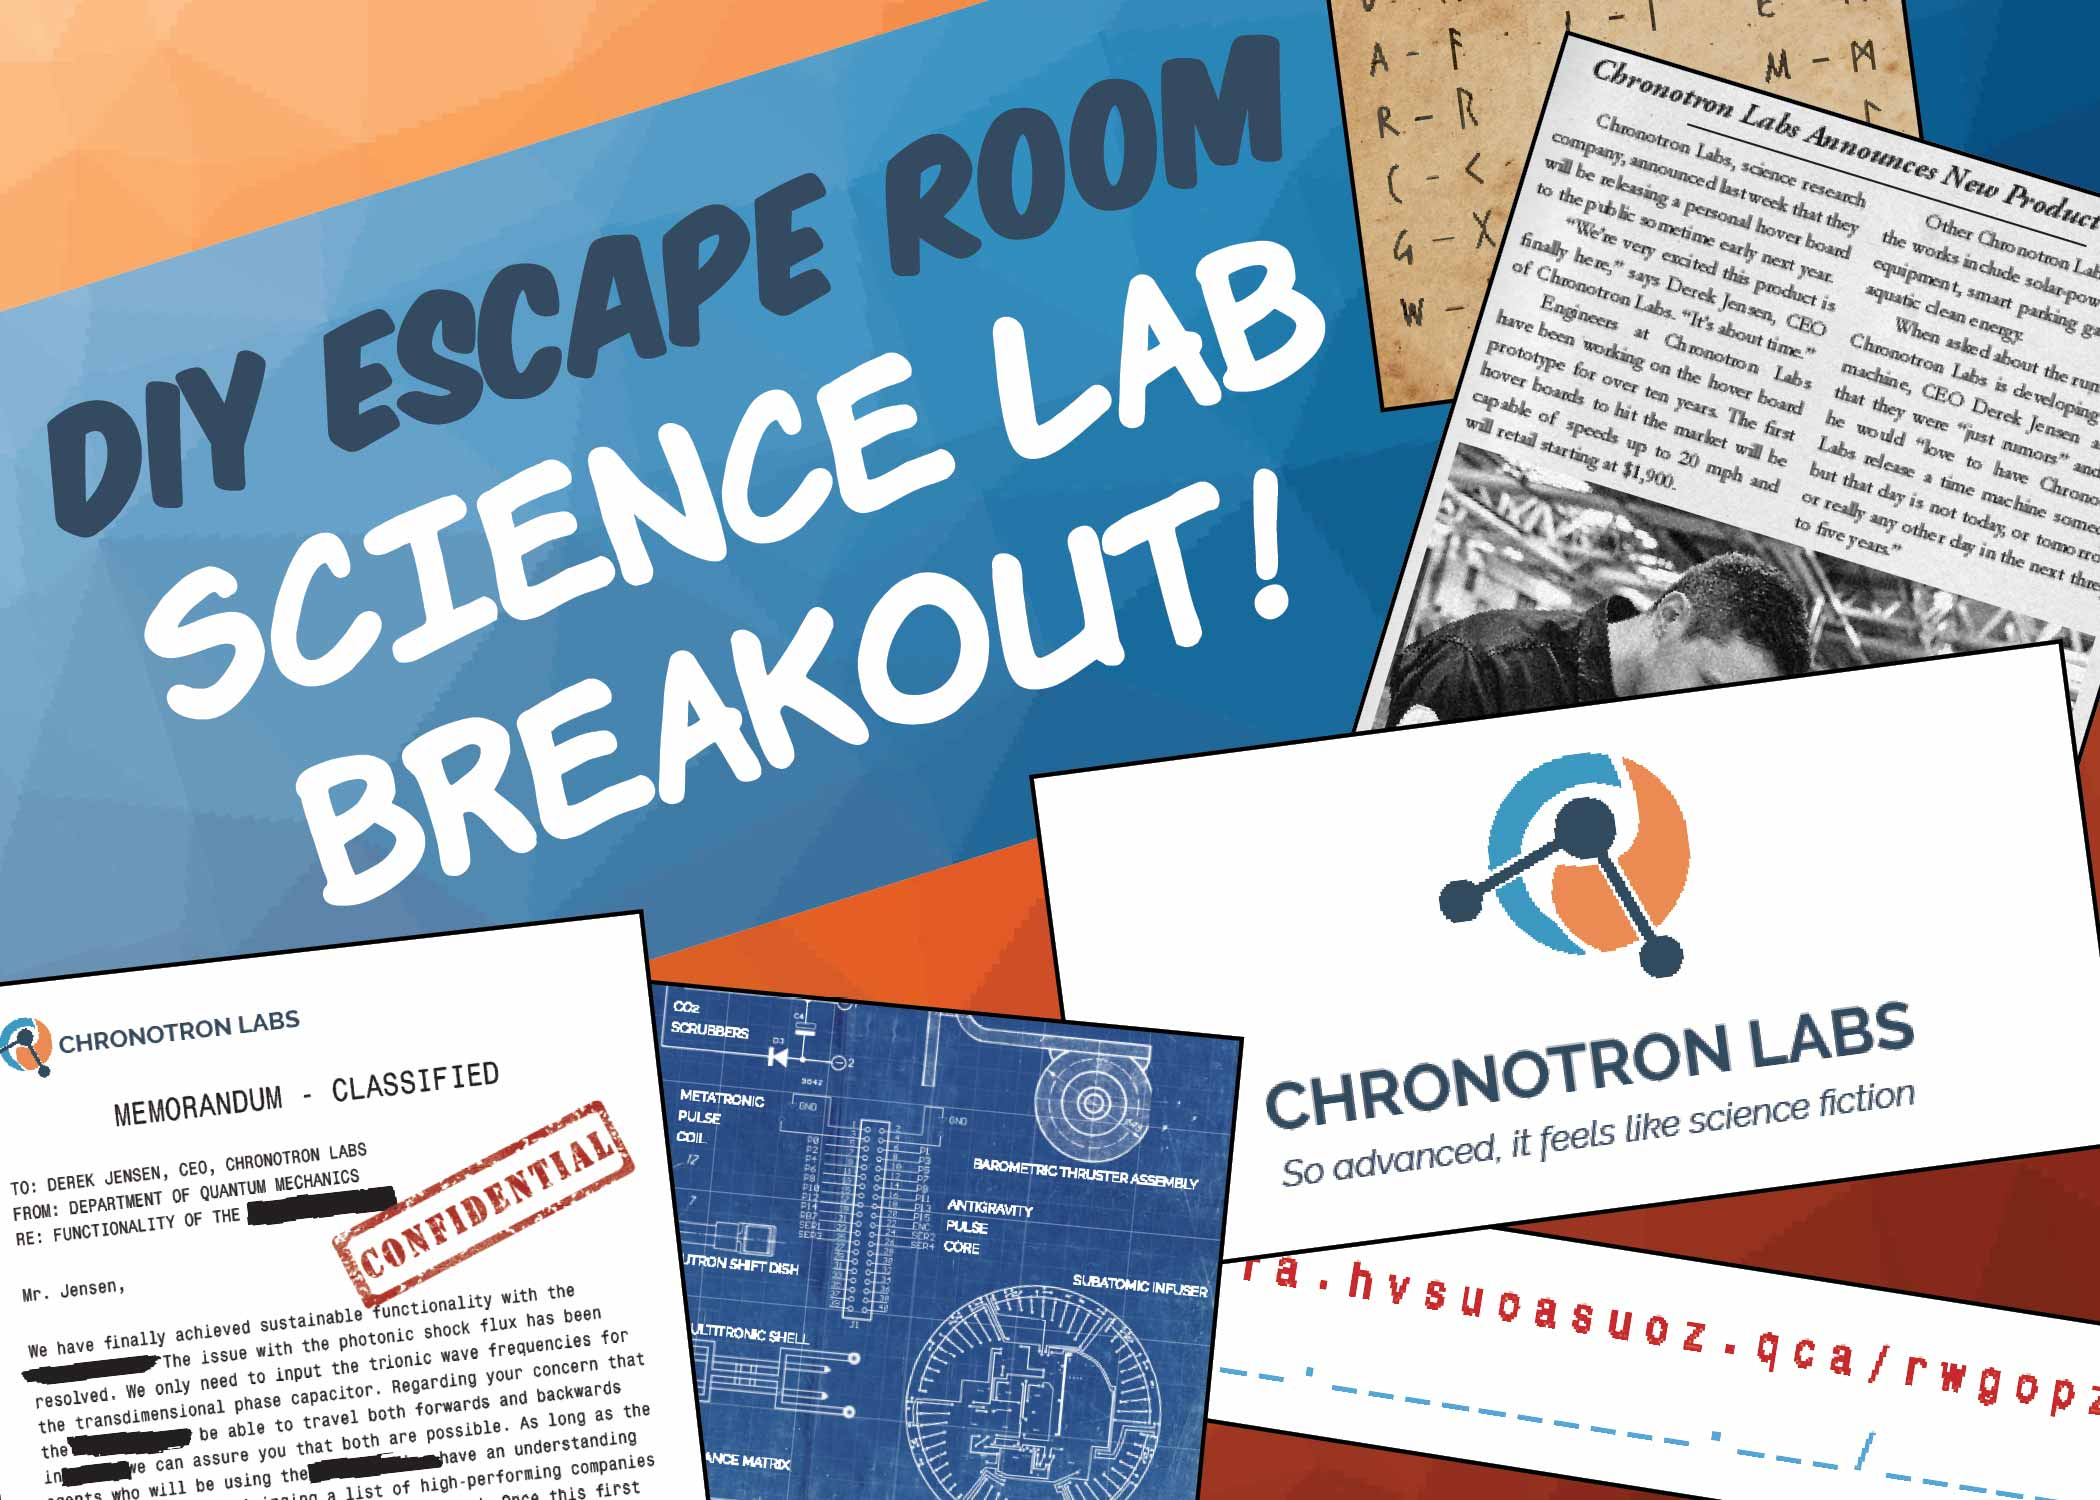 image regarding Free Printable Escape Room Kit Pdf identify Do it yourself Escape Place Package - Science Lab Breakout - The Match Gal